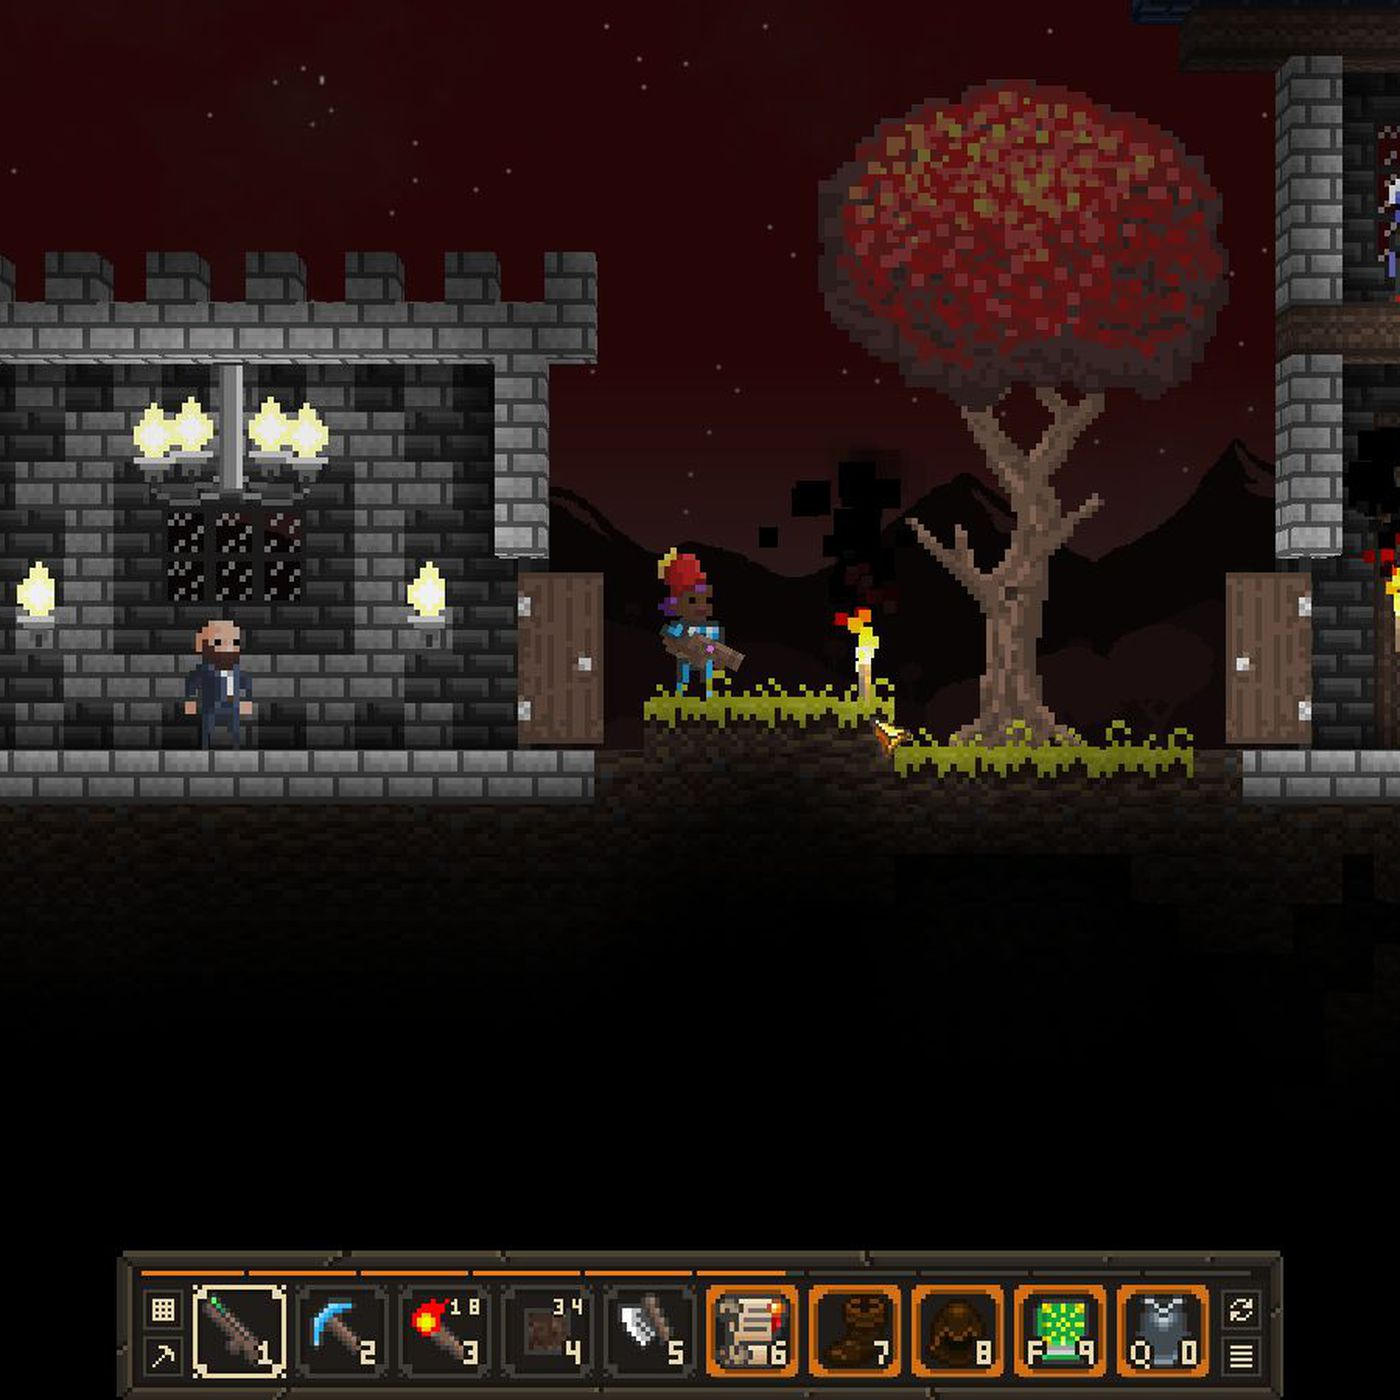 Diablo creator David Brevik is back with a new game, It